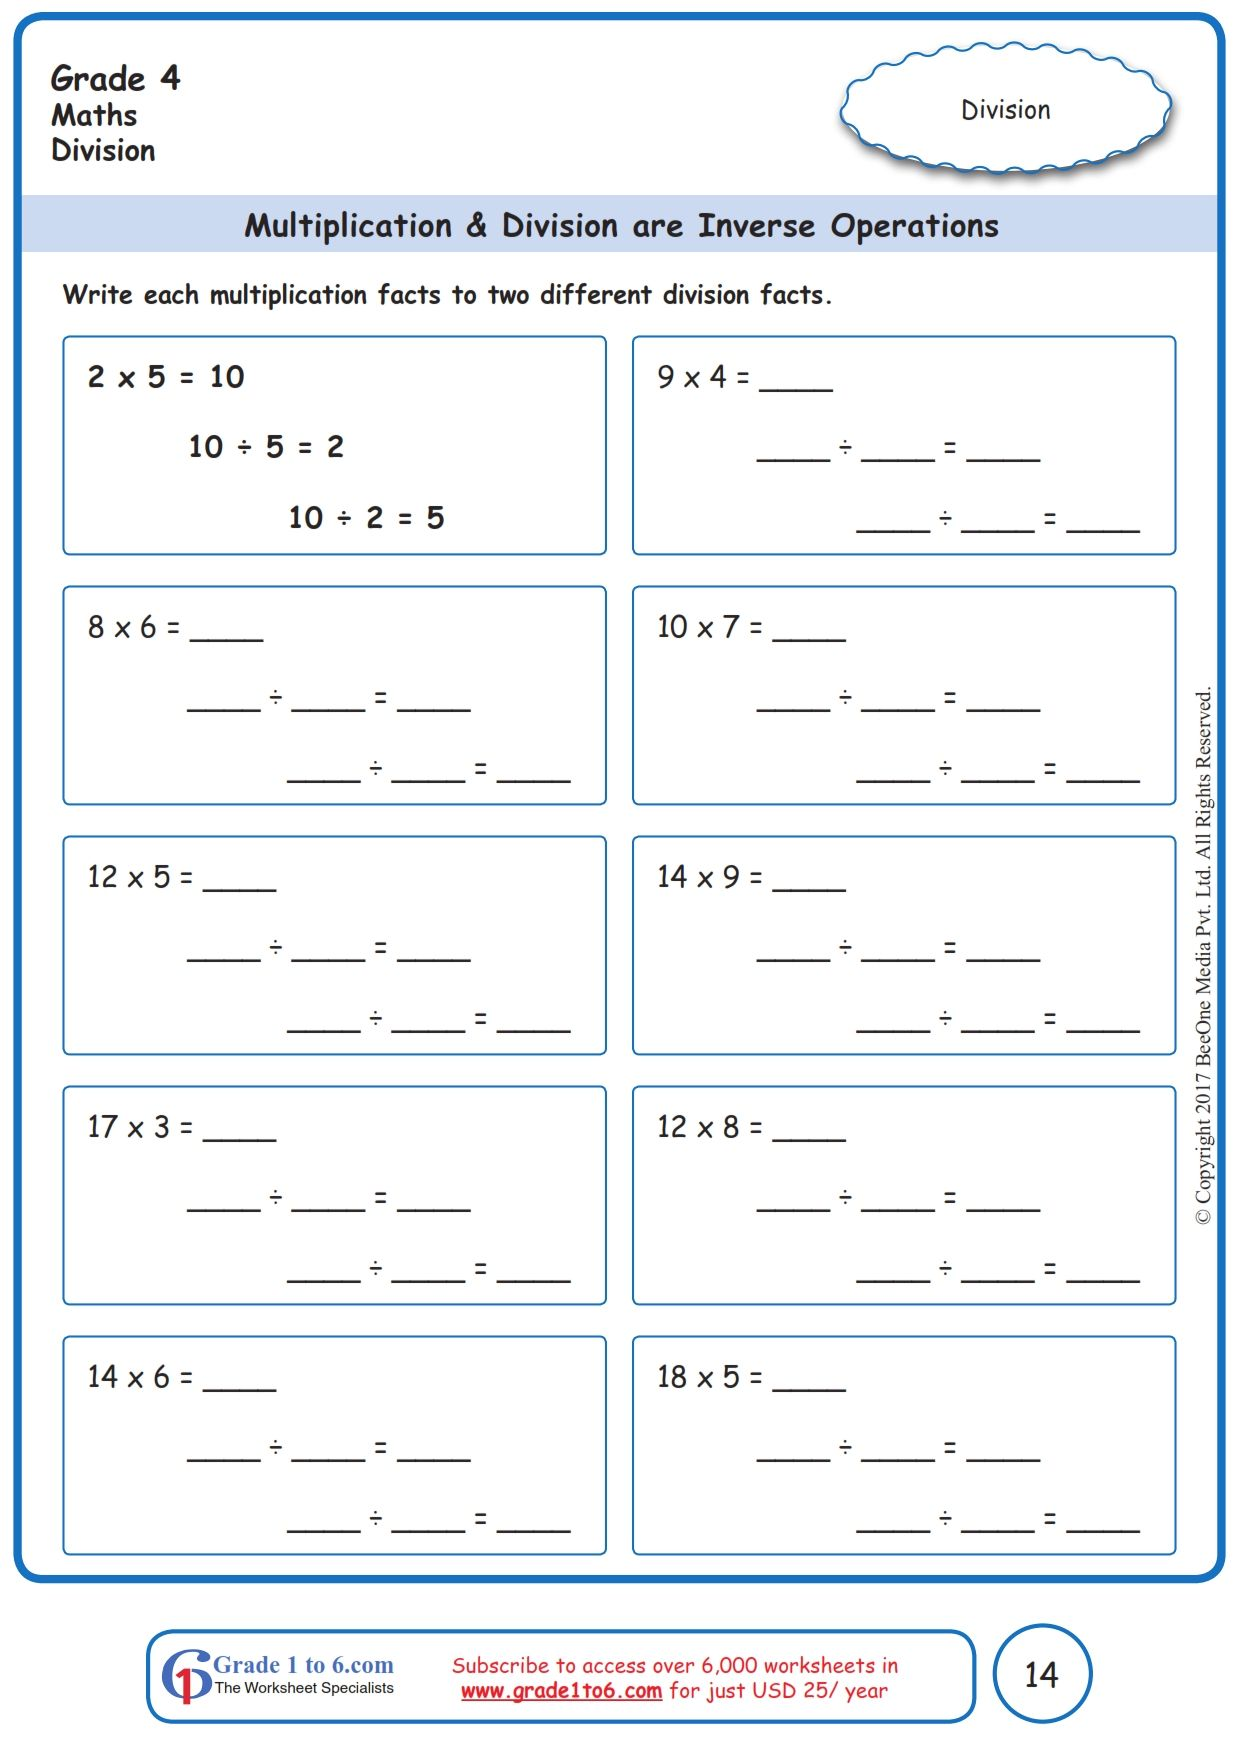 Free Math Worksheets For Grade 1 Through Grade 6